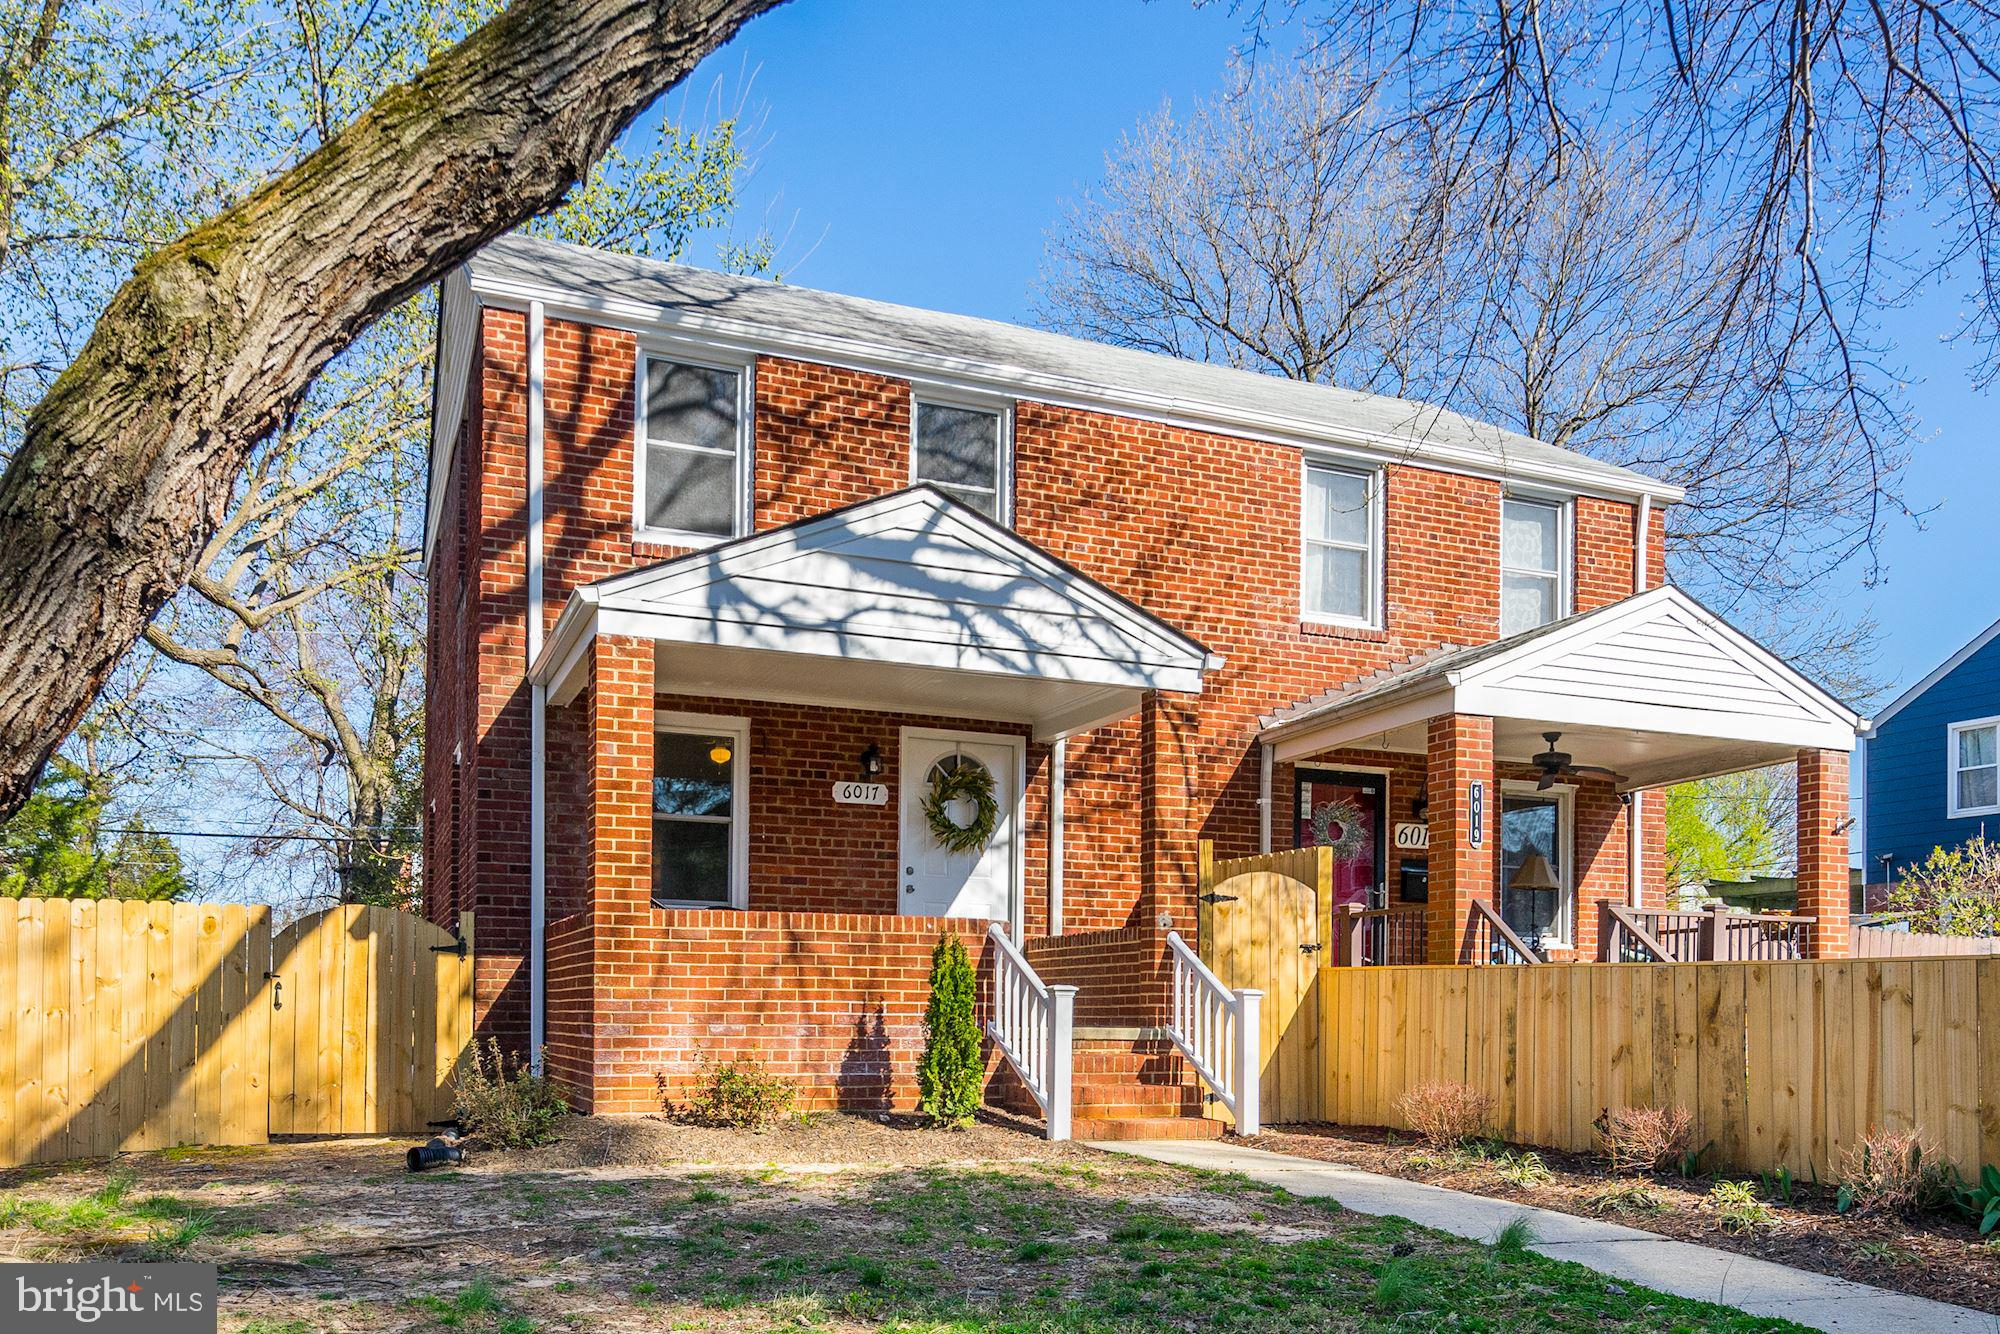 SHORT WALK TO THE METRO! Completely Renovated for the Sale! New Electrical, Plumbing, Windows, Heating/Cooling units, Water Heater and Baths - Gorgeous Kitchen: Stainless Steel Appliances, abundant cabinets with granite counter tops! New wood flooring on main level with new carpet over hardwoods on upper level. Finished Basement: Newly installed window well for extra light & optional 3rd BDRM. New Fully Fenced Backyard with Gate access and Patio!